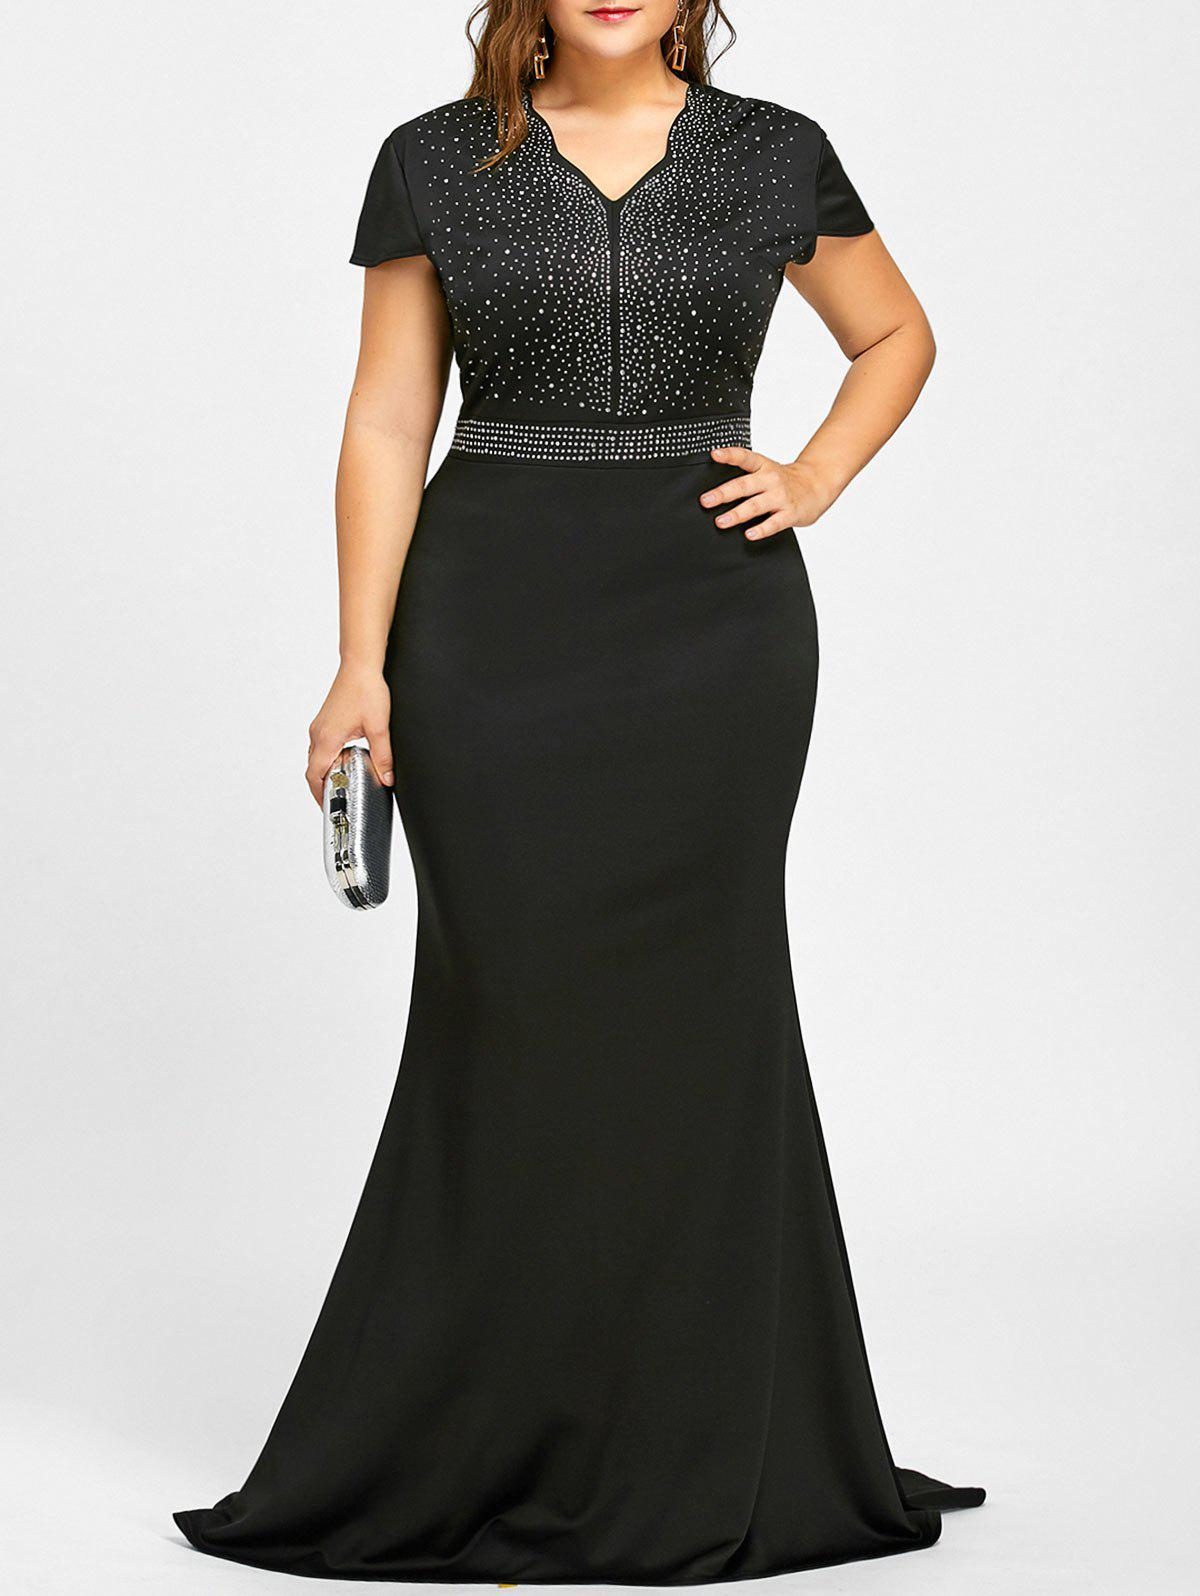 2018 Rhinestone Maxi Plus Size Formal Dress In Black 2xl | Rosegal.com